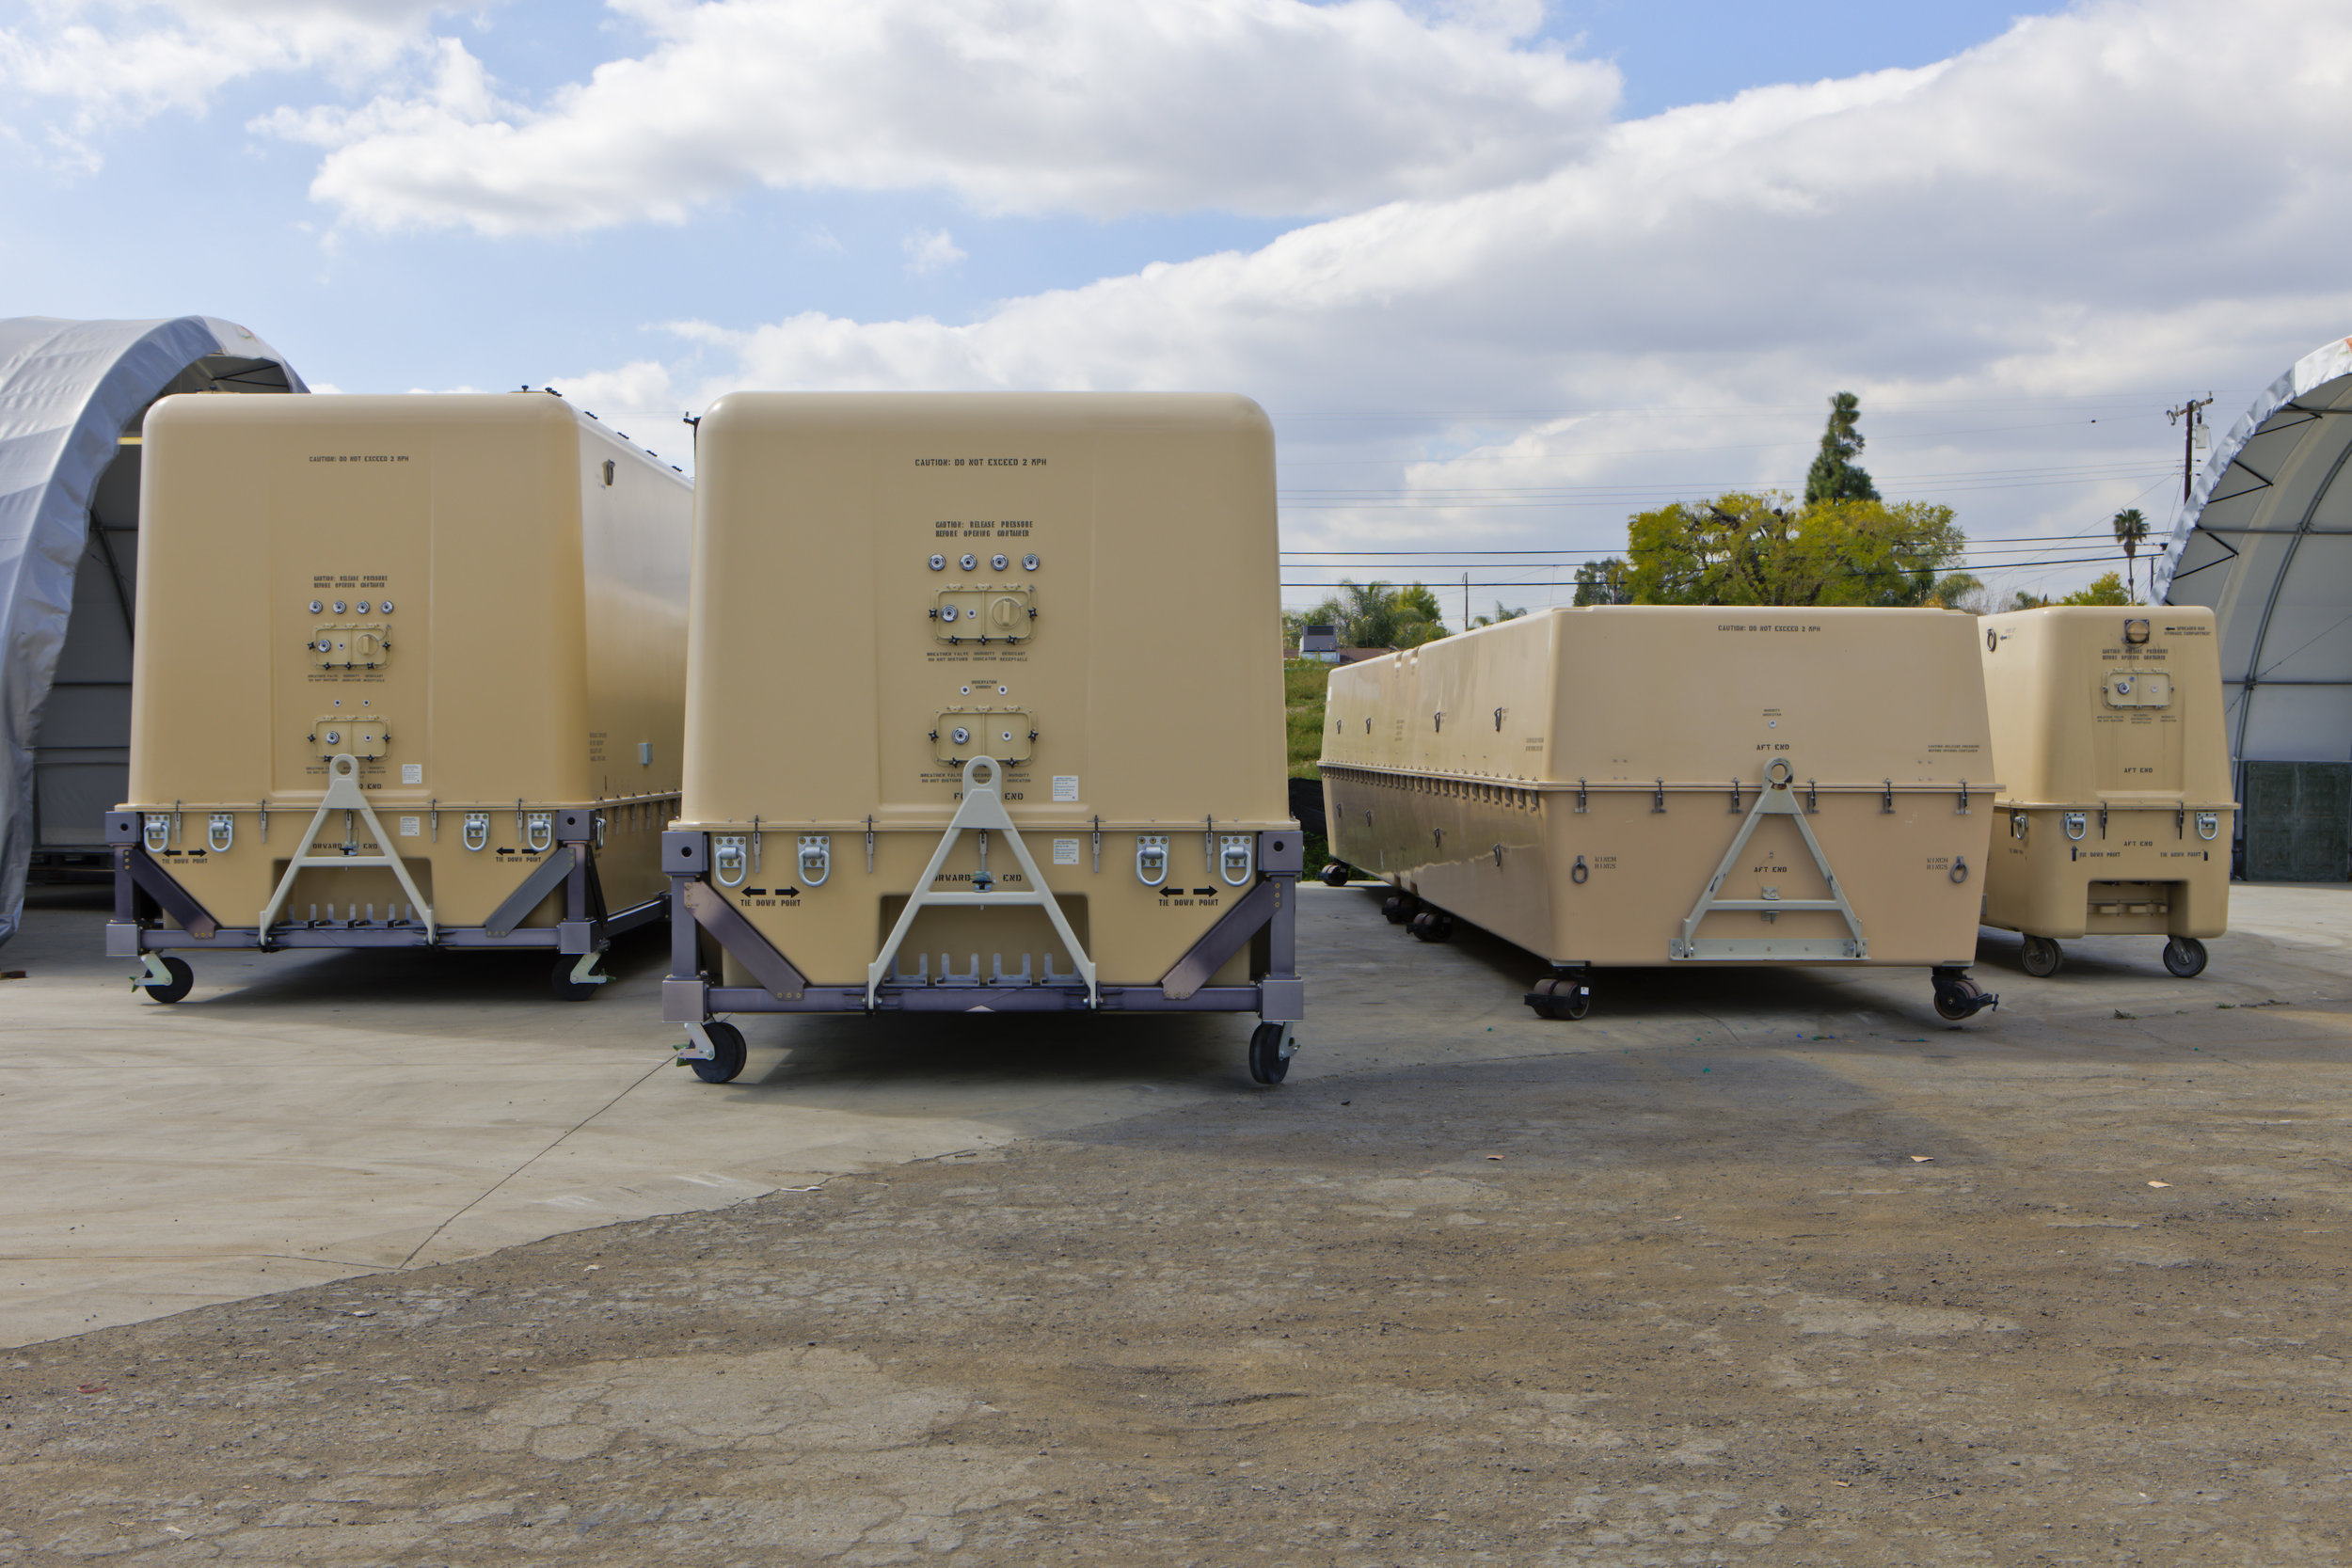 Unmanned Air Vehicle (UAV) Shipping & Storage Containers